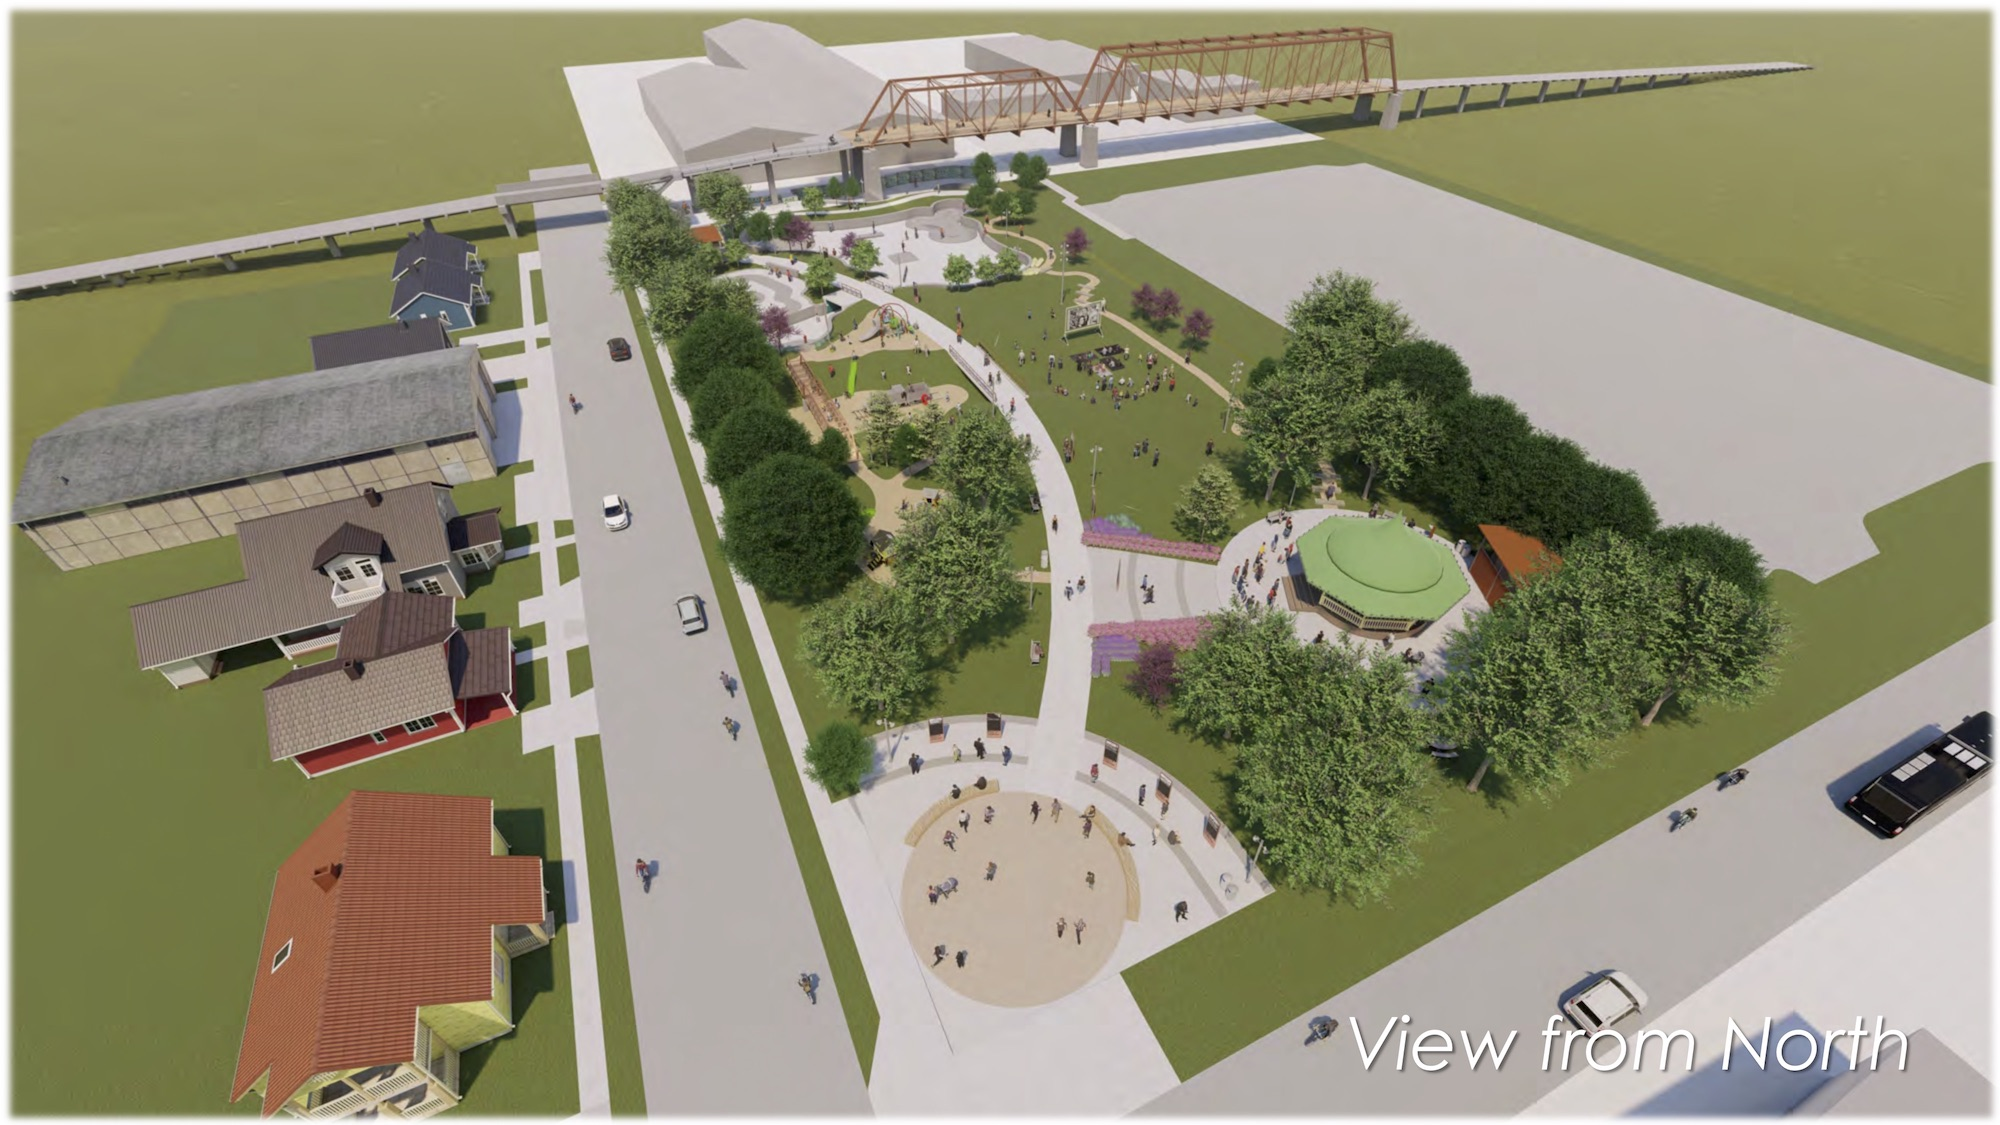 This rendering shows and aerial view of the planned park next to Hays Street Bridge looking South.